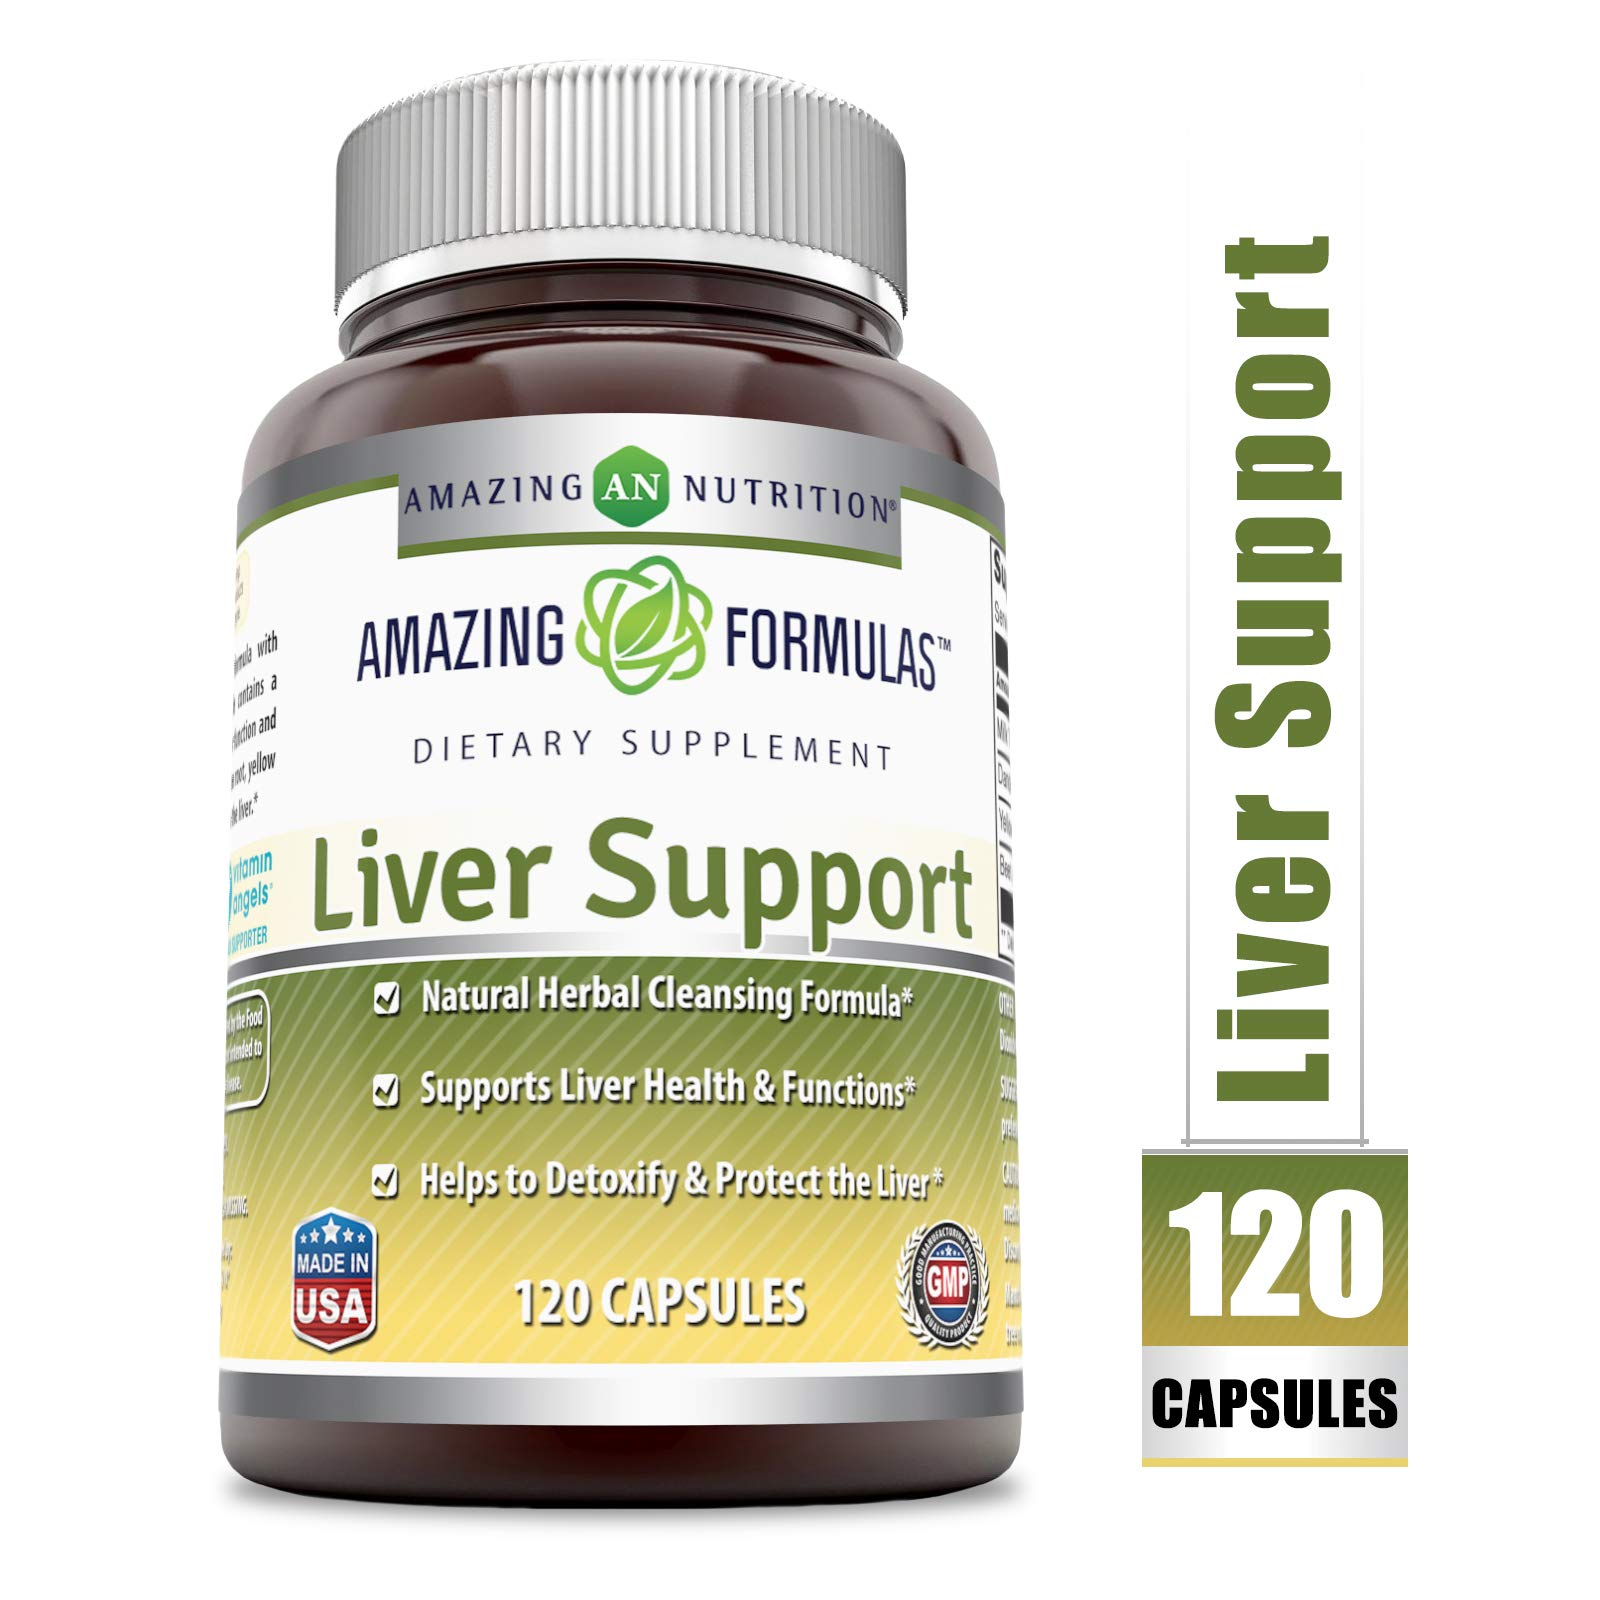 Amazing Formulas Liver Support 120 Capsules (Non-GMO) *Natural Herbal Cleansing Formulas *Supports Liver Health & Function *Helps Detoxify & Protect Liver by Amazing Nutrition